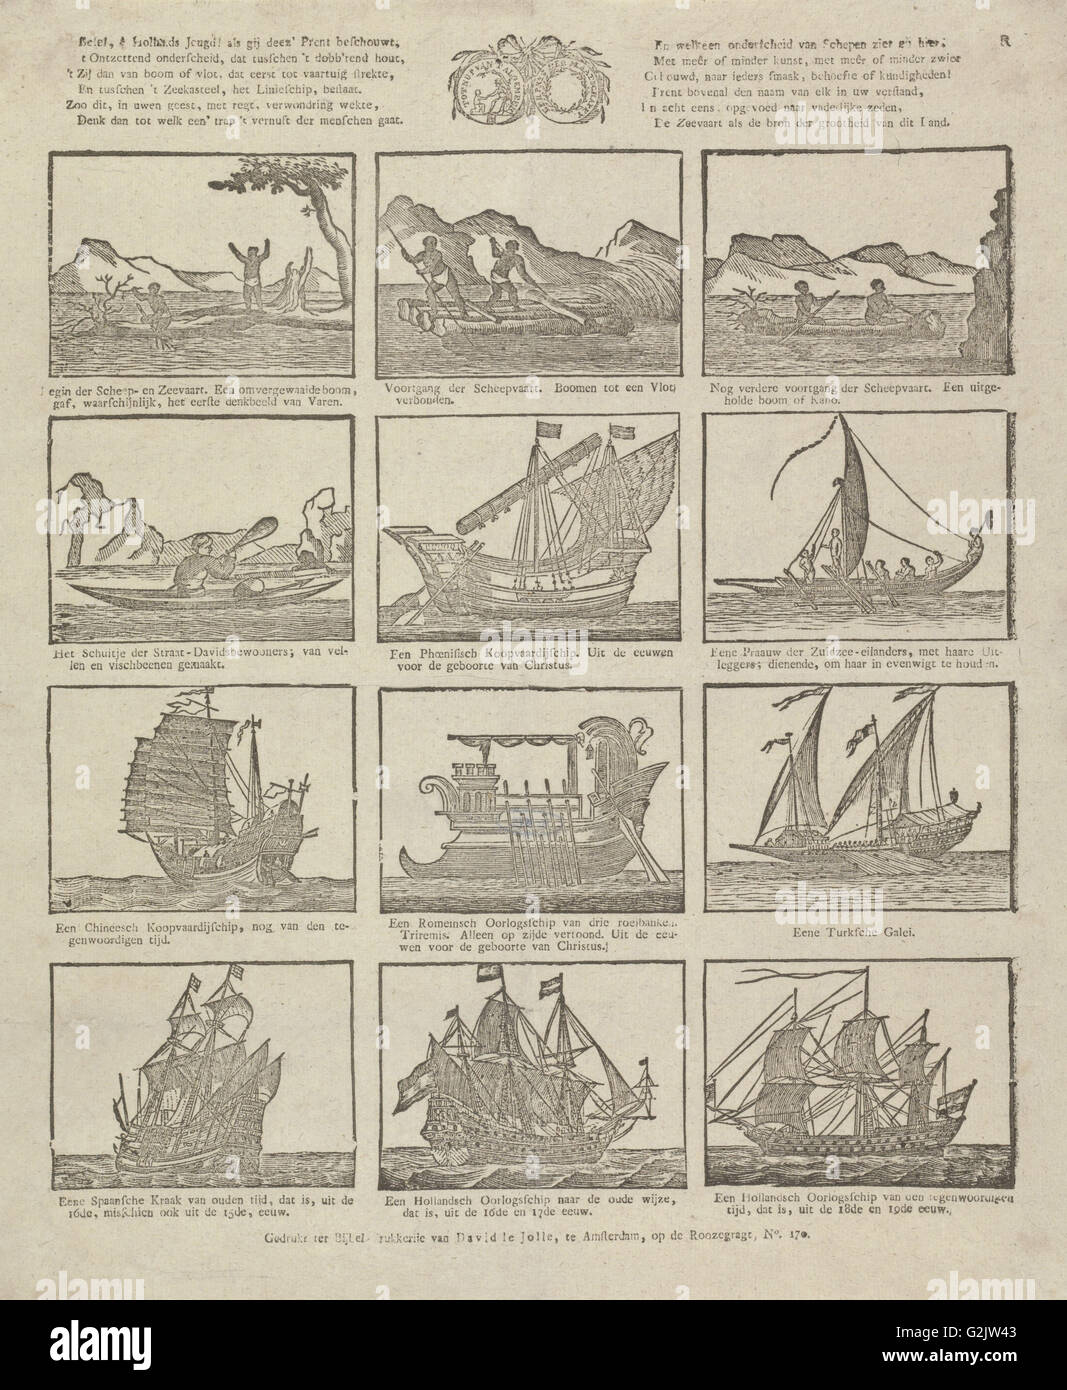 Print showing various old ships, David le Jolle, Anonymous, 1814 - c. 1820 Stock Photo